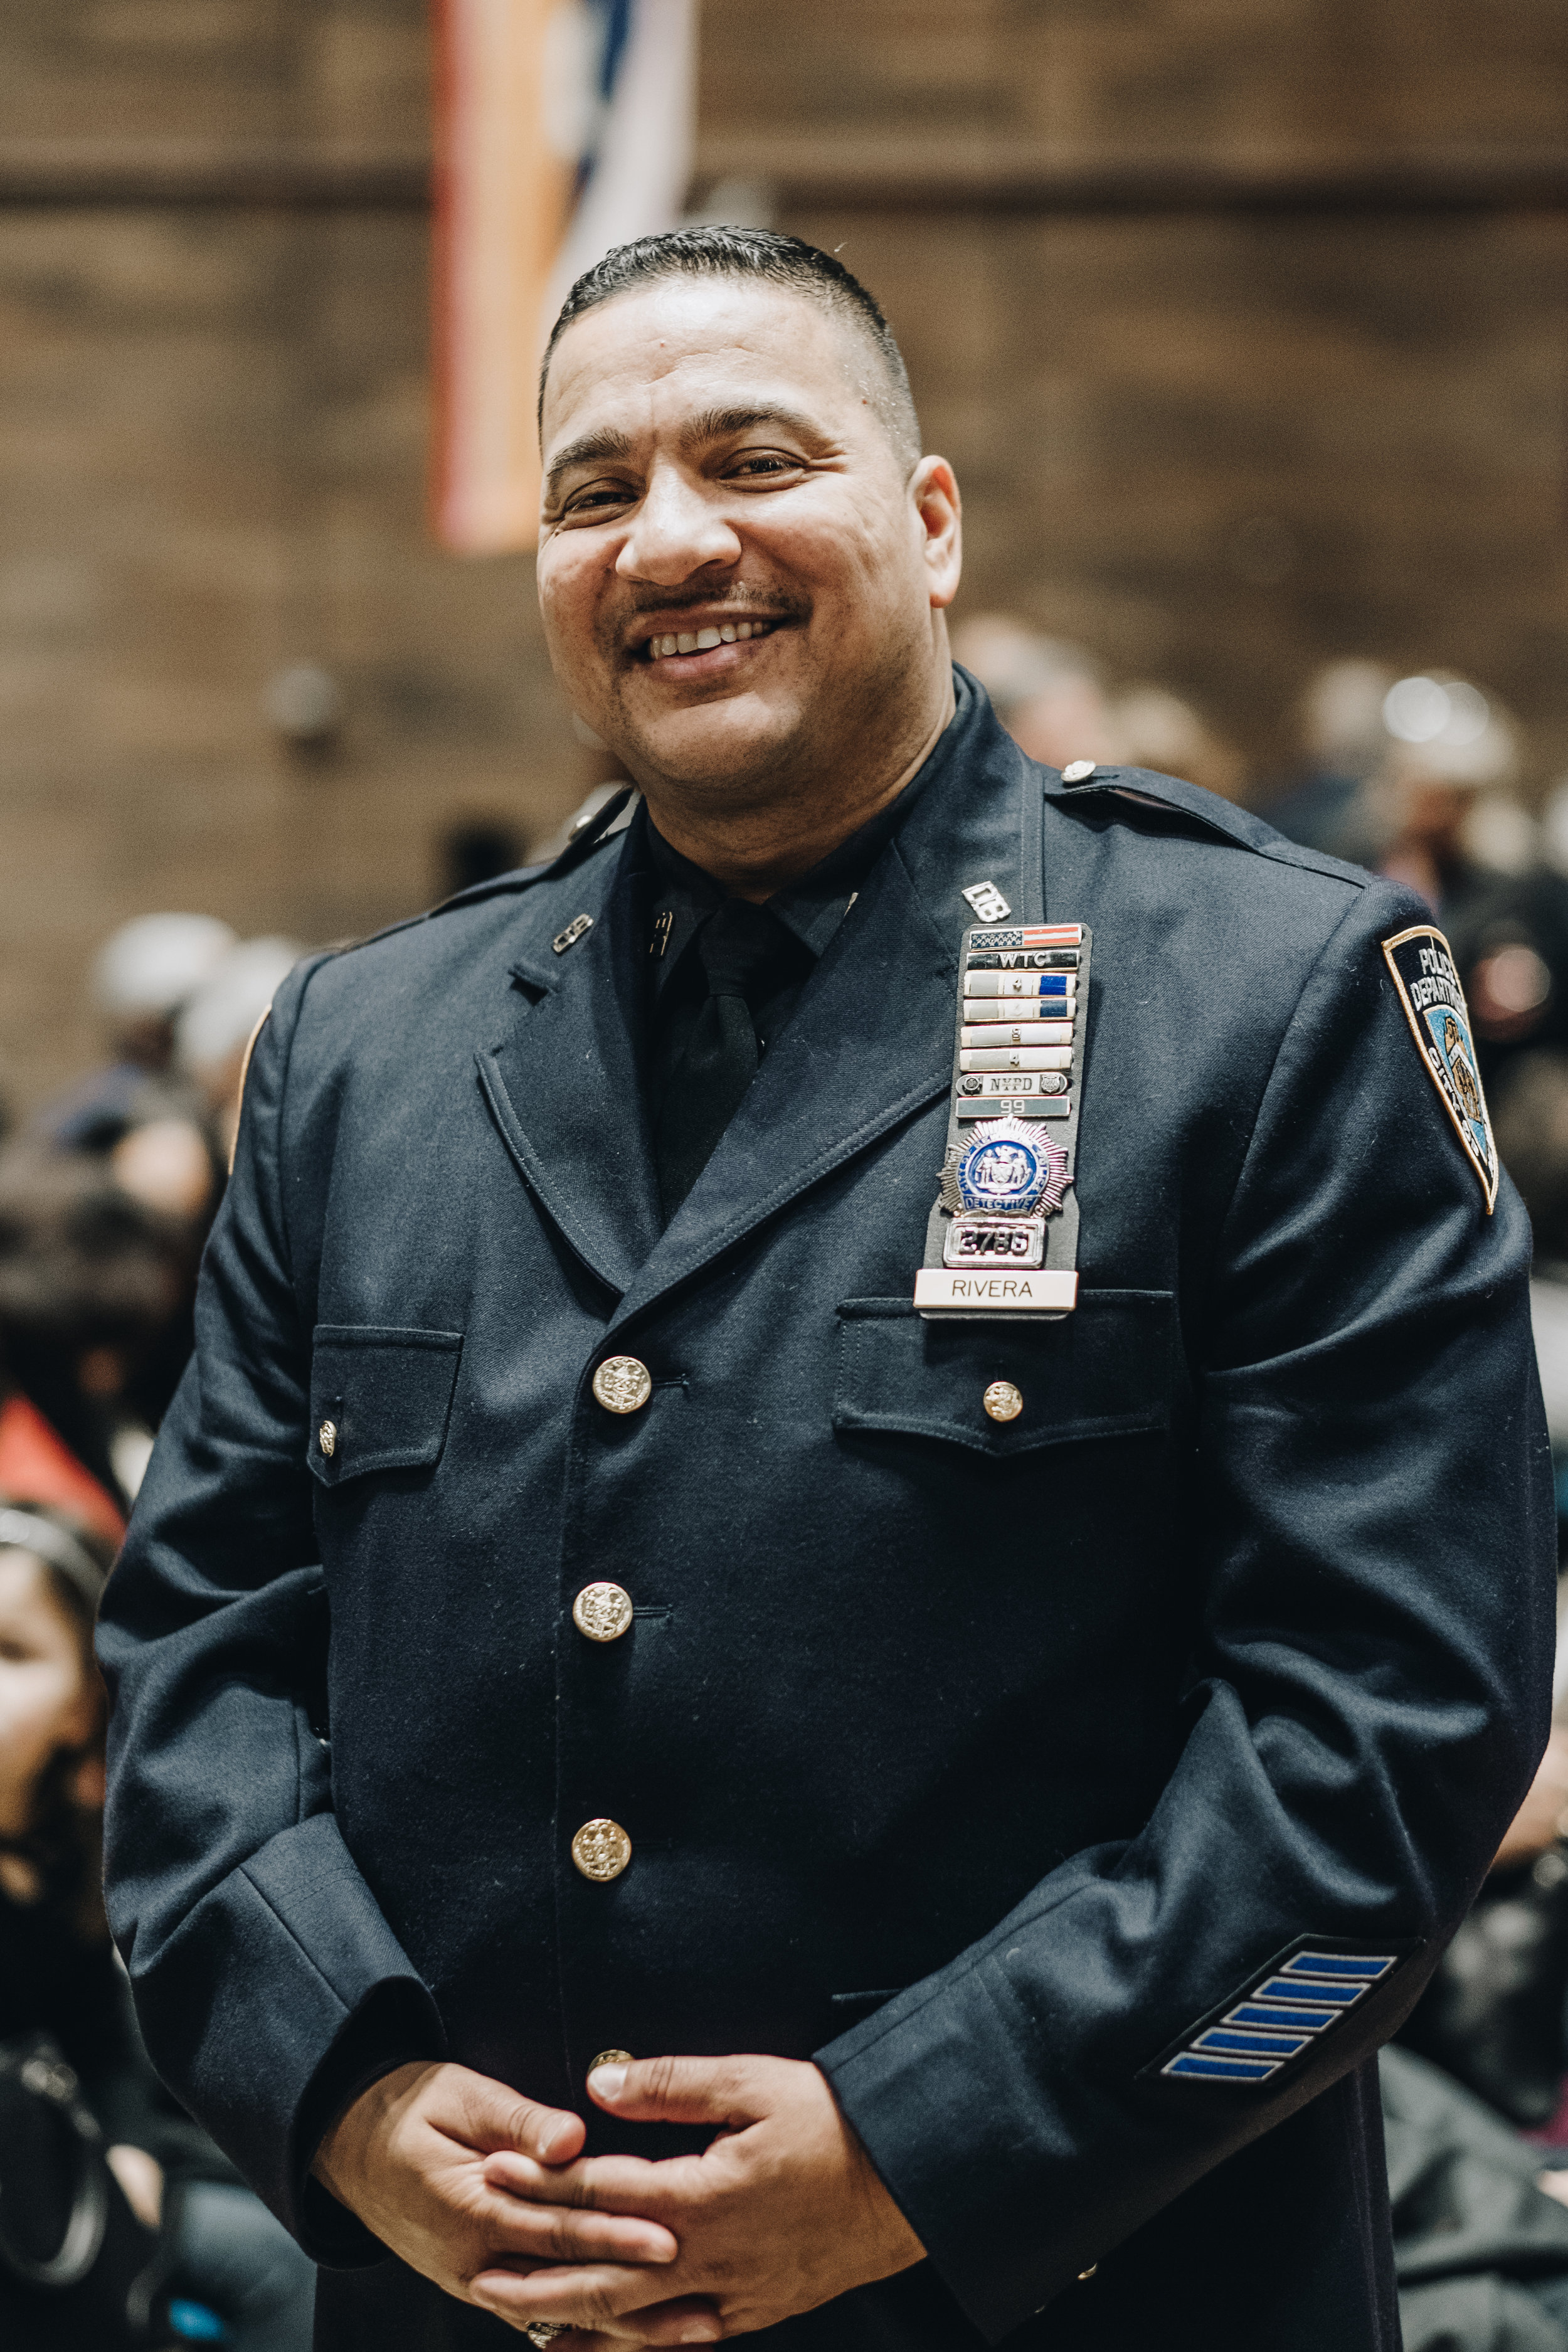 NYPD_Promotions-6.jpg